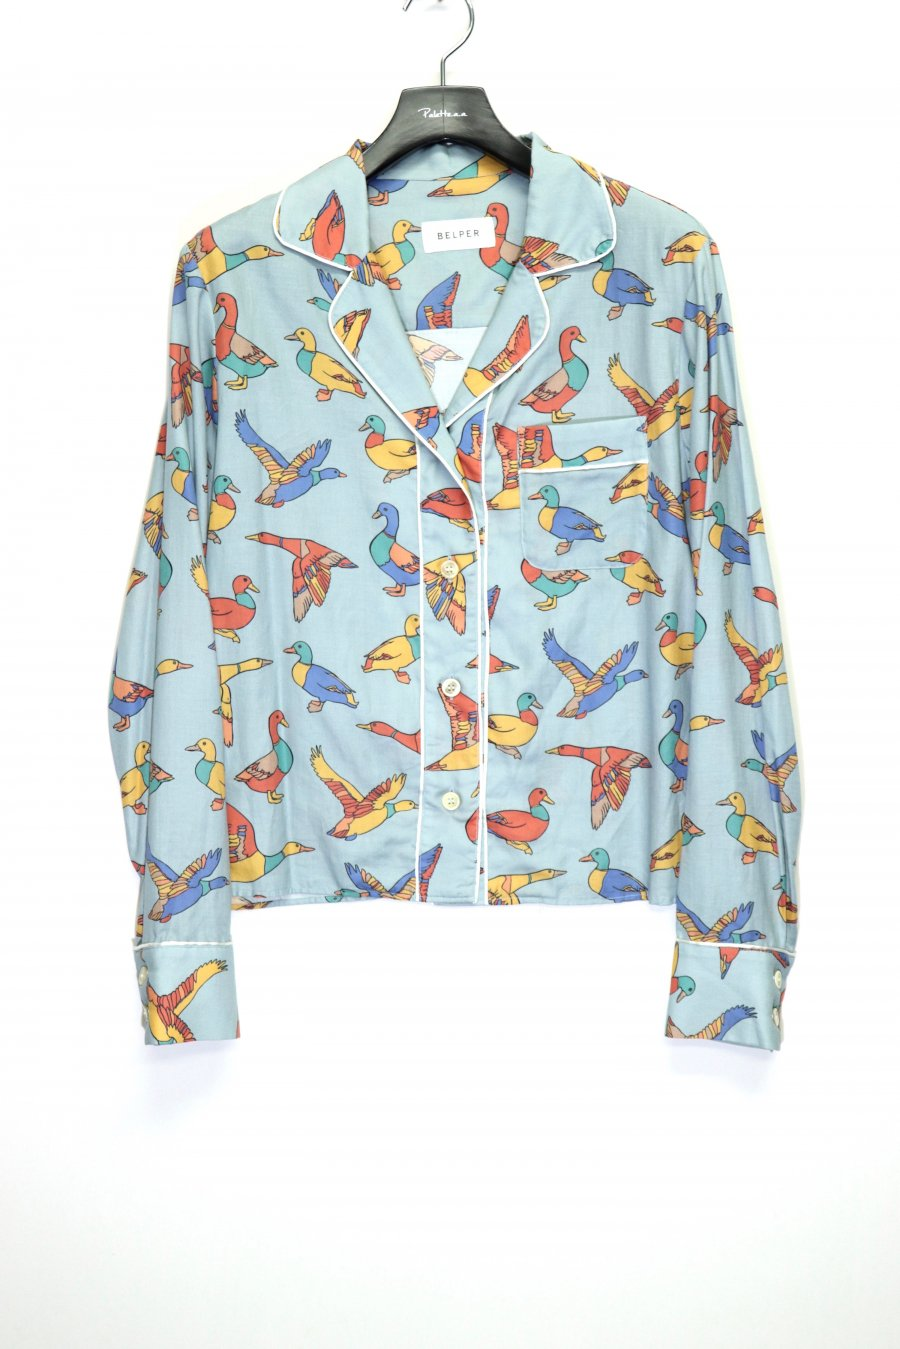 【20%OFF】BELPER  print shirts<img class='new_mark_img2' src='https://img.shop-pro.jp/img/new/icons20.gif' style='border:none;display:inline;margin:0px;padding:0px;width:auto;' />